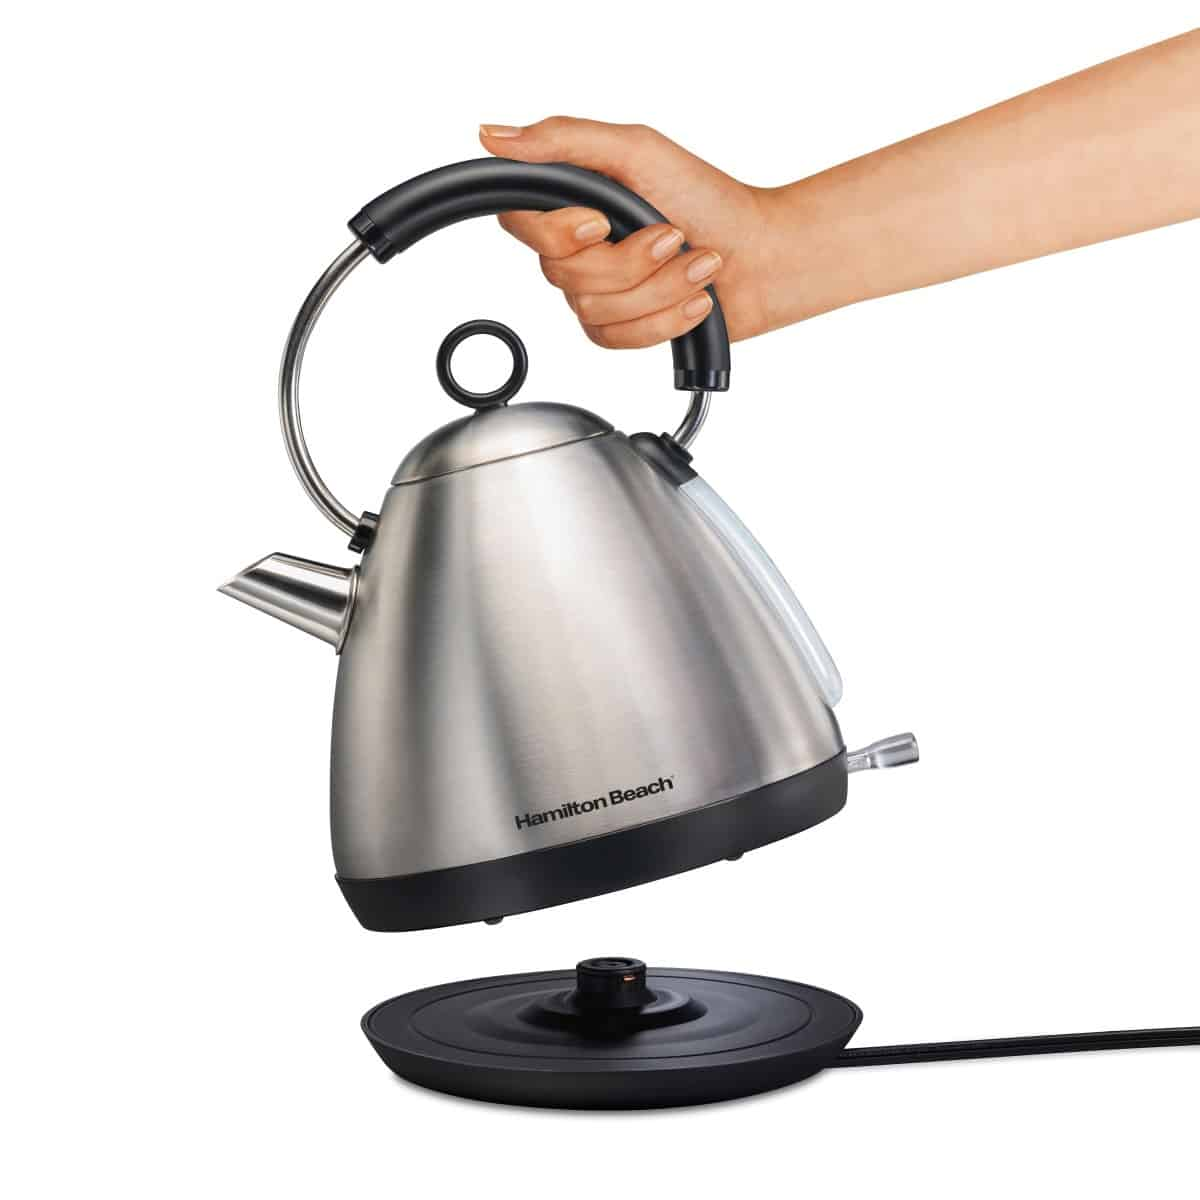 Hamilton Beach Stainless Steel Dome Kettle for Barista Gift Guide